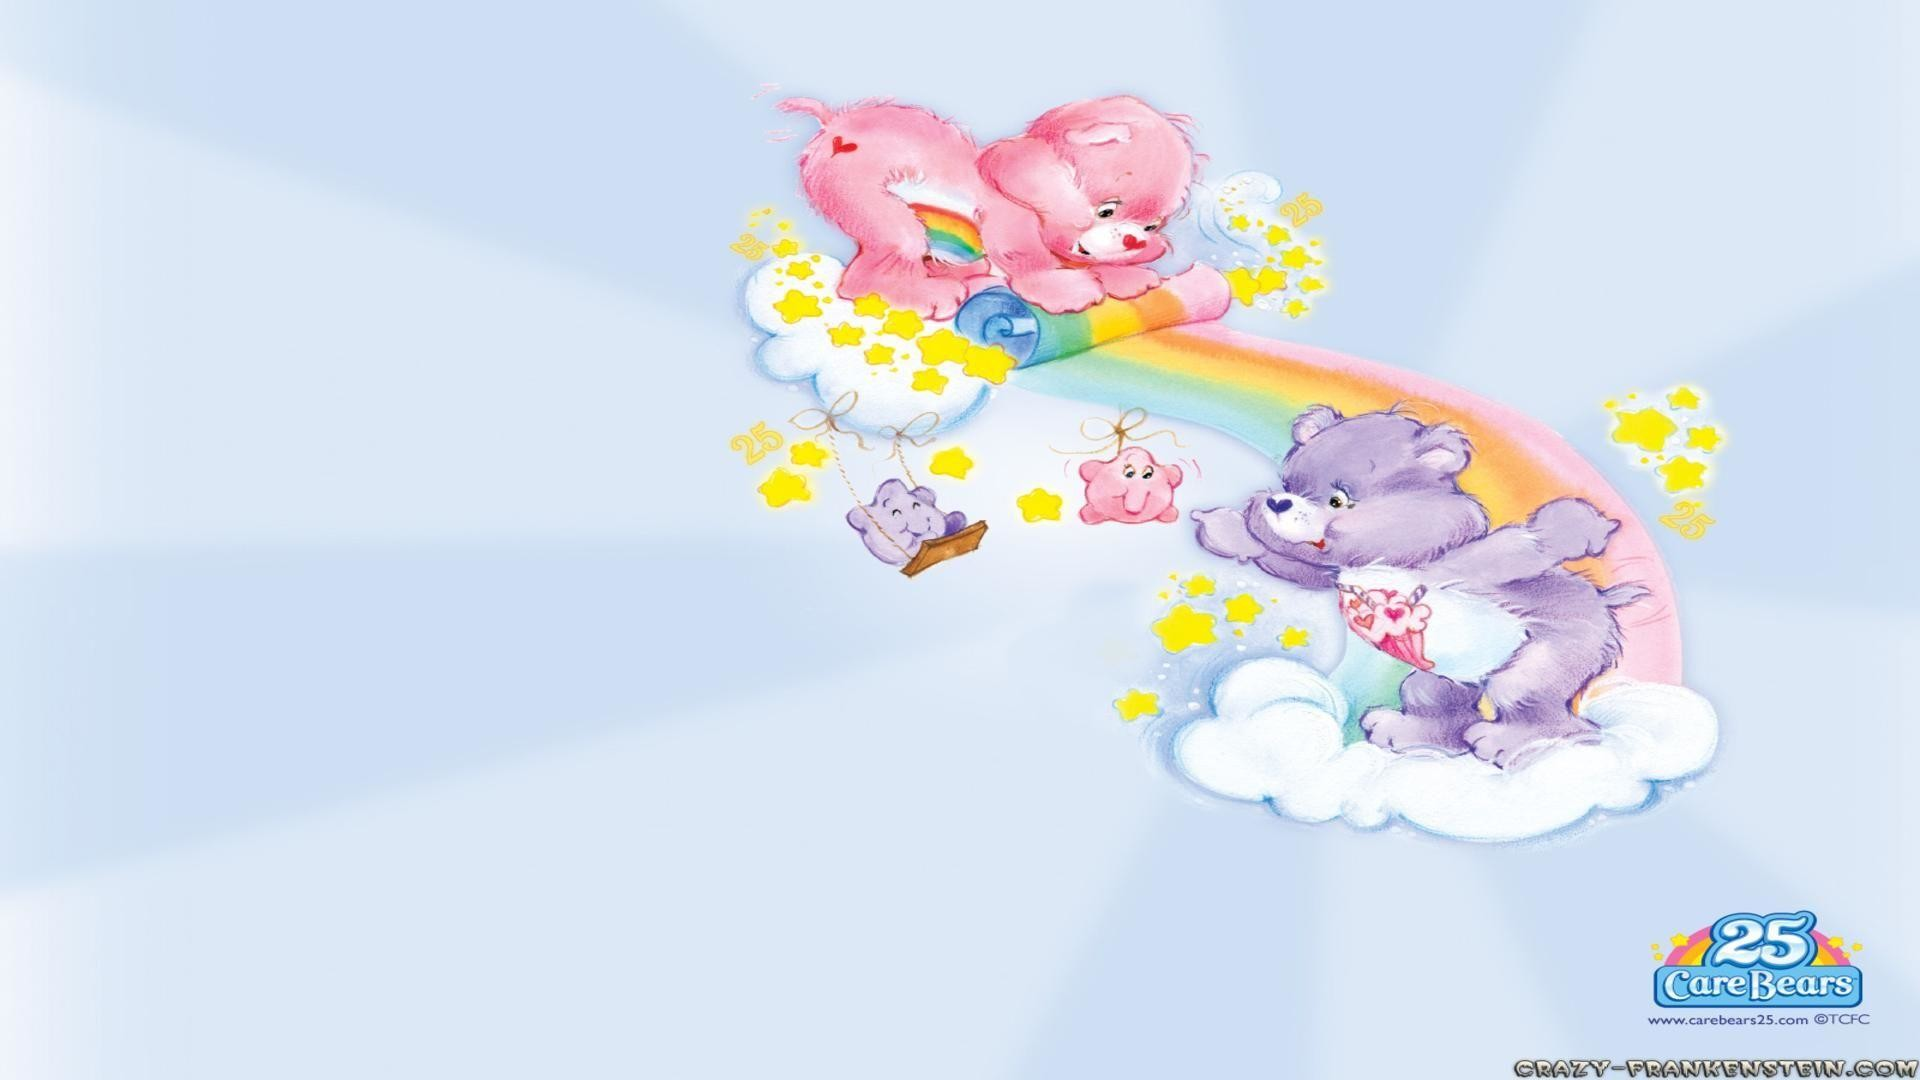 Care Bears Wallpaper Backgrounds 59 Images